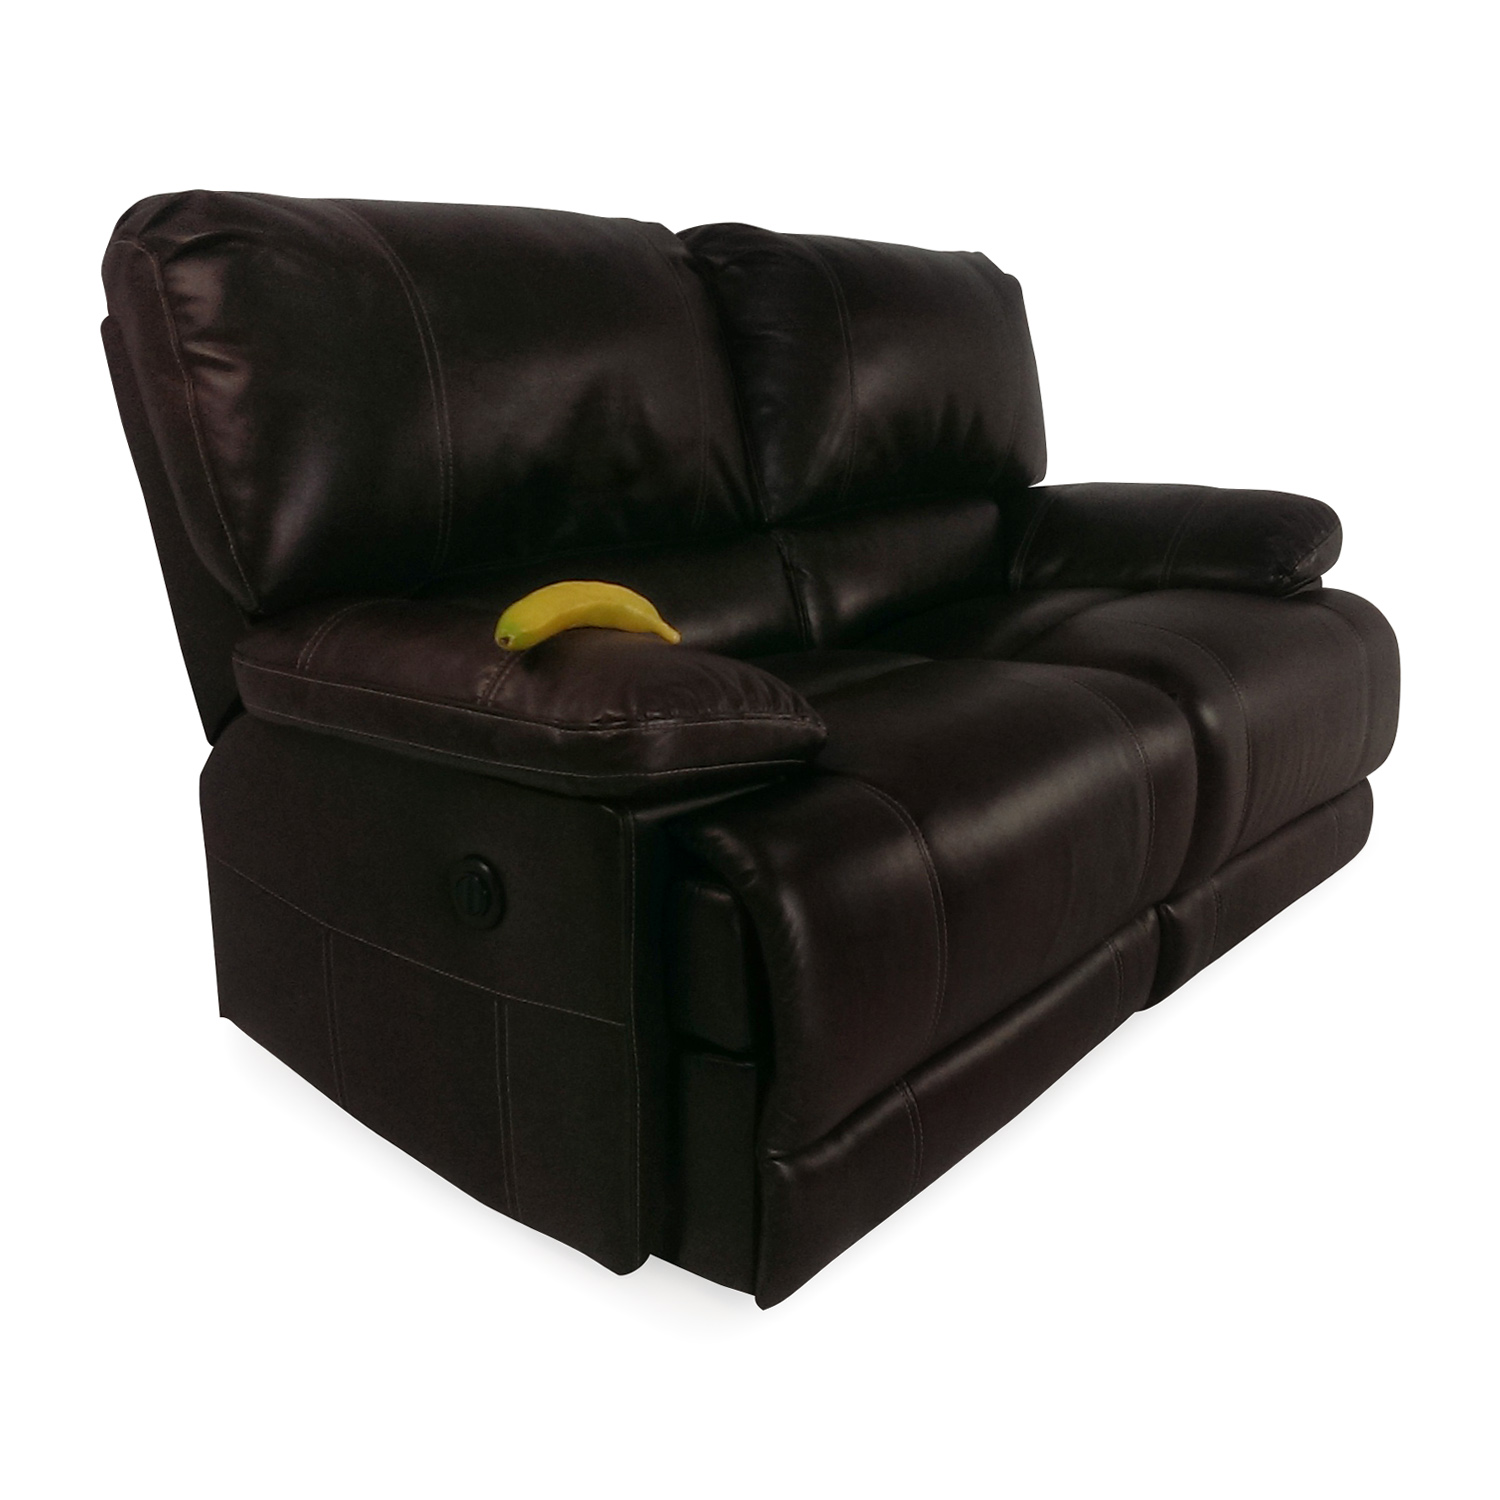 shop Bobs Furniture Reclining Loveseat Bobs Furniture Sofas